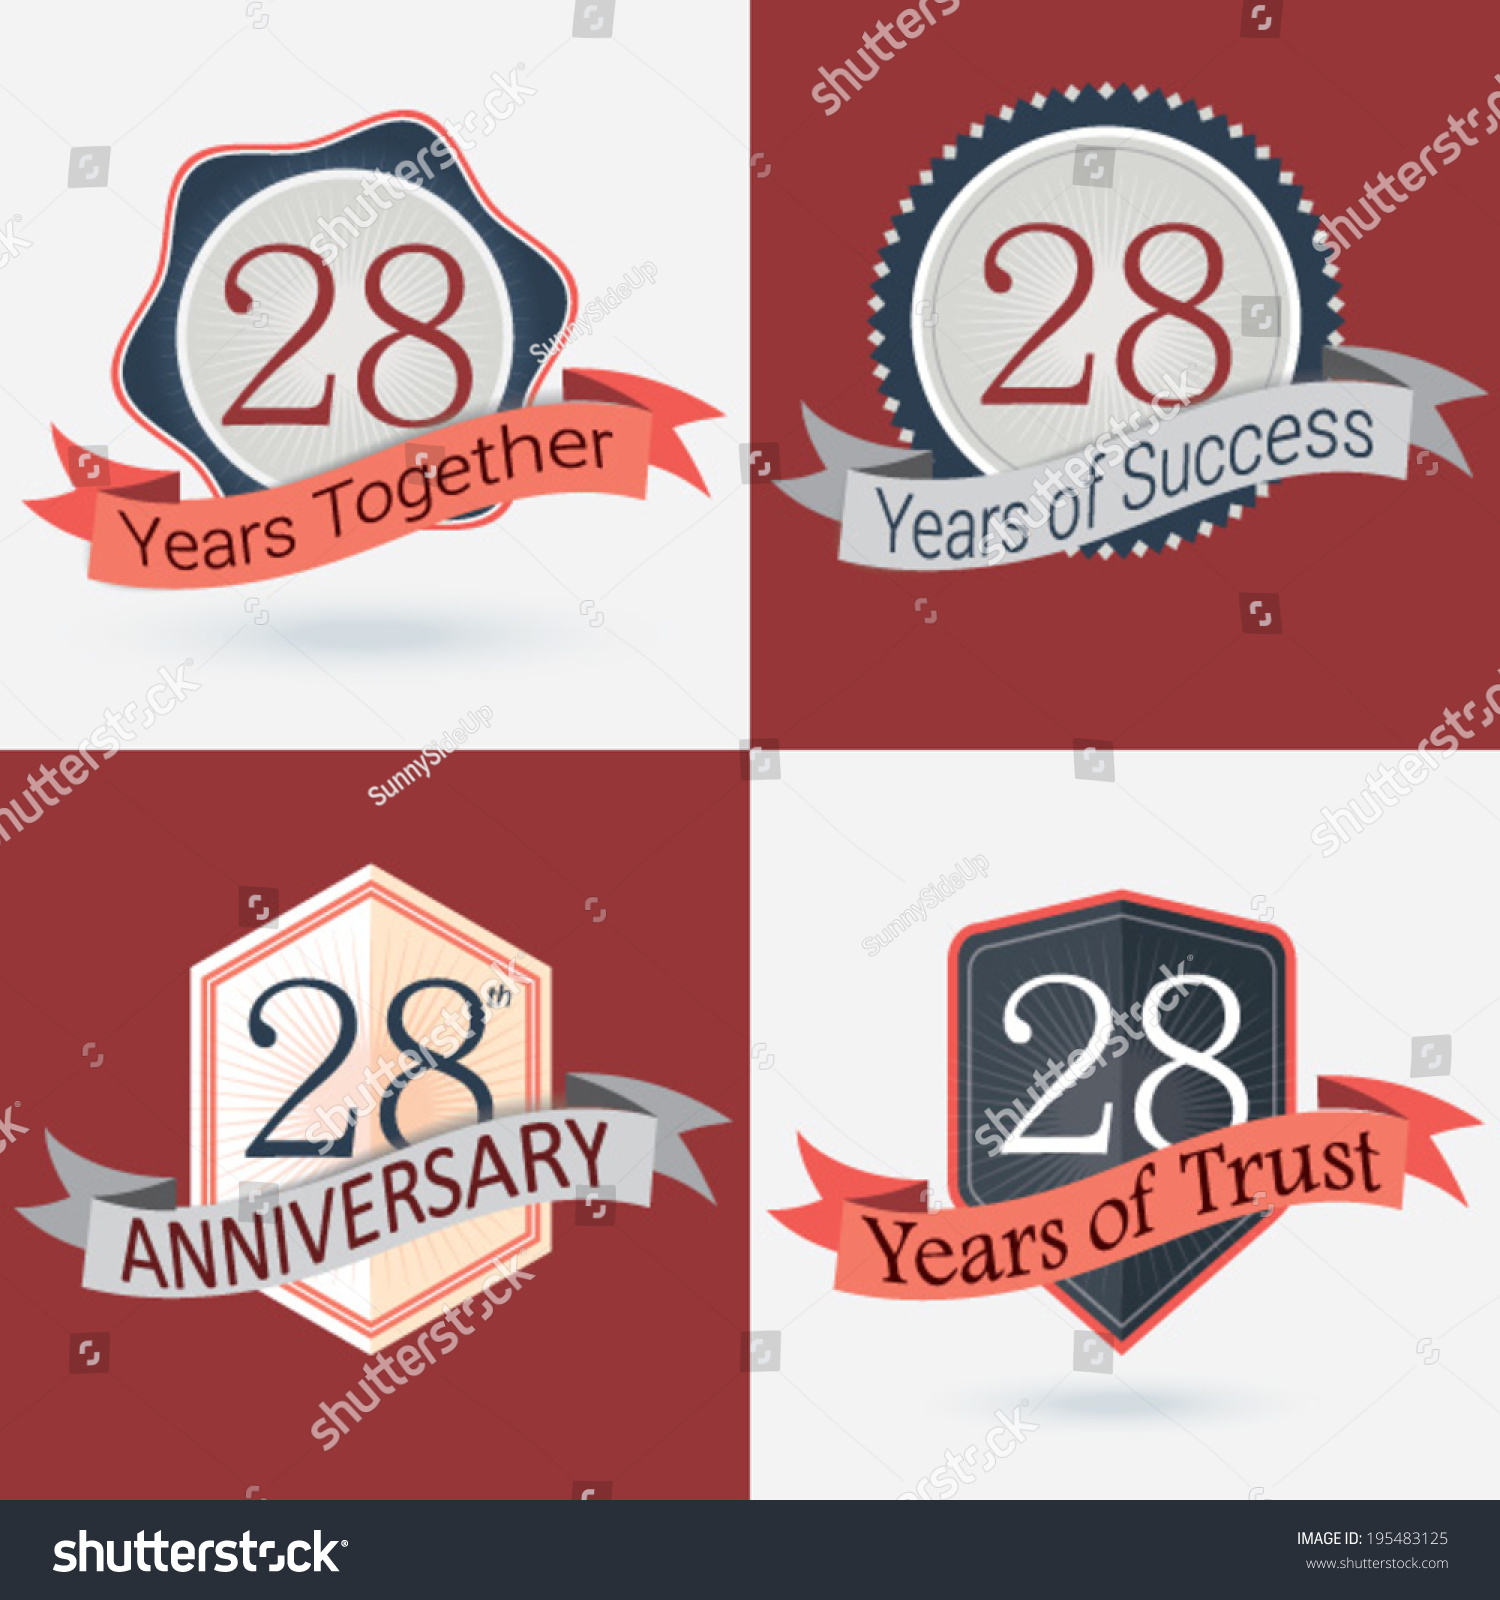 Royalty free 28th anniversary 28 years together 195483125 28th anniversary 28 years together 28 years of success 28 years of trust biocorpaavc Gallery